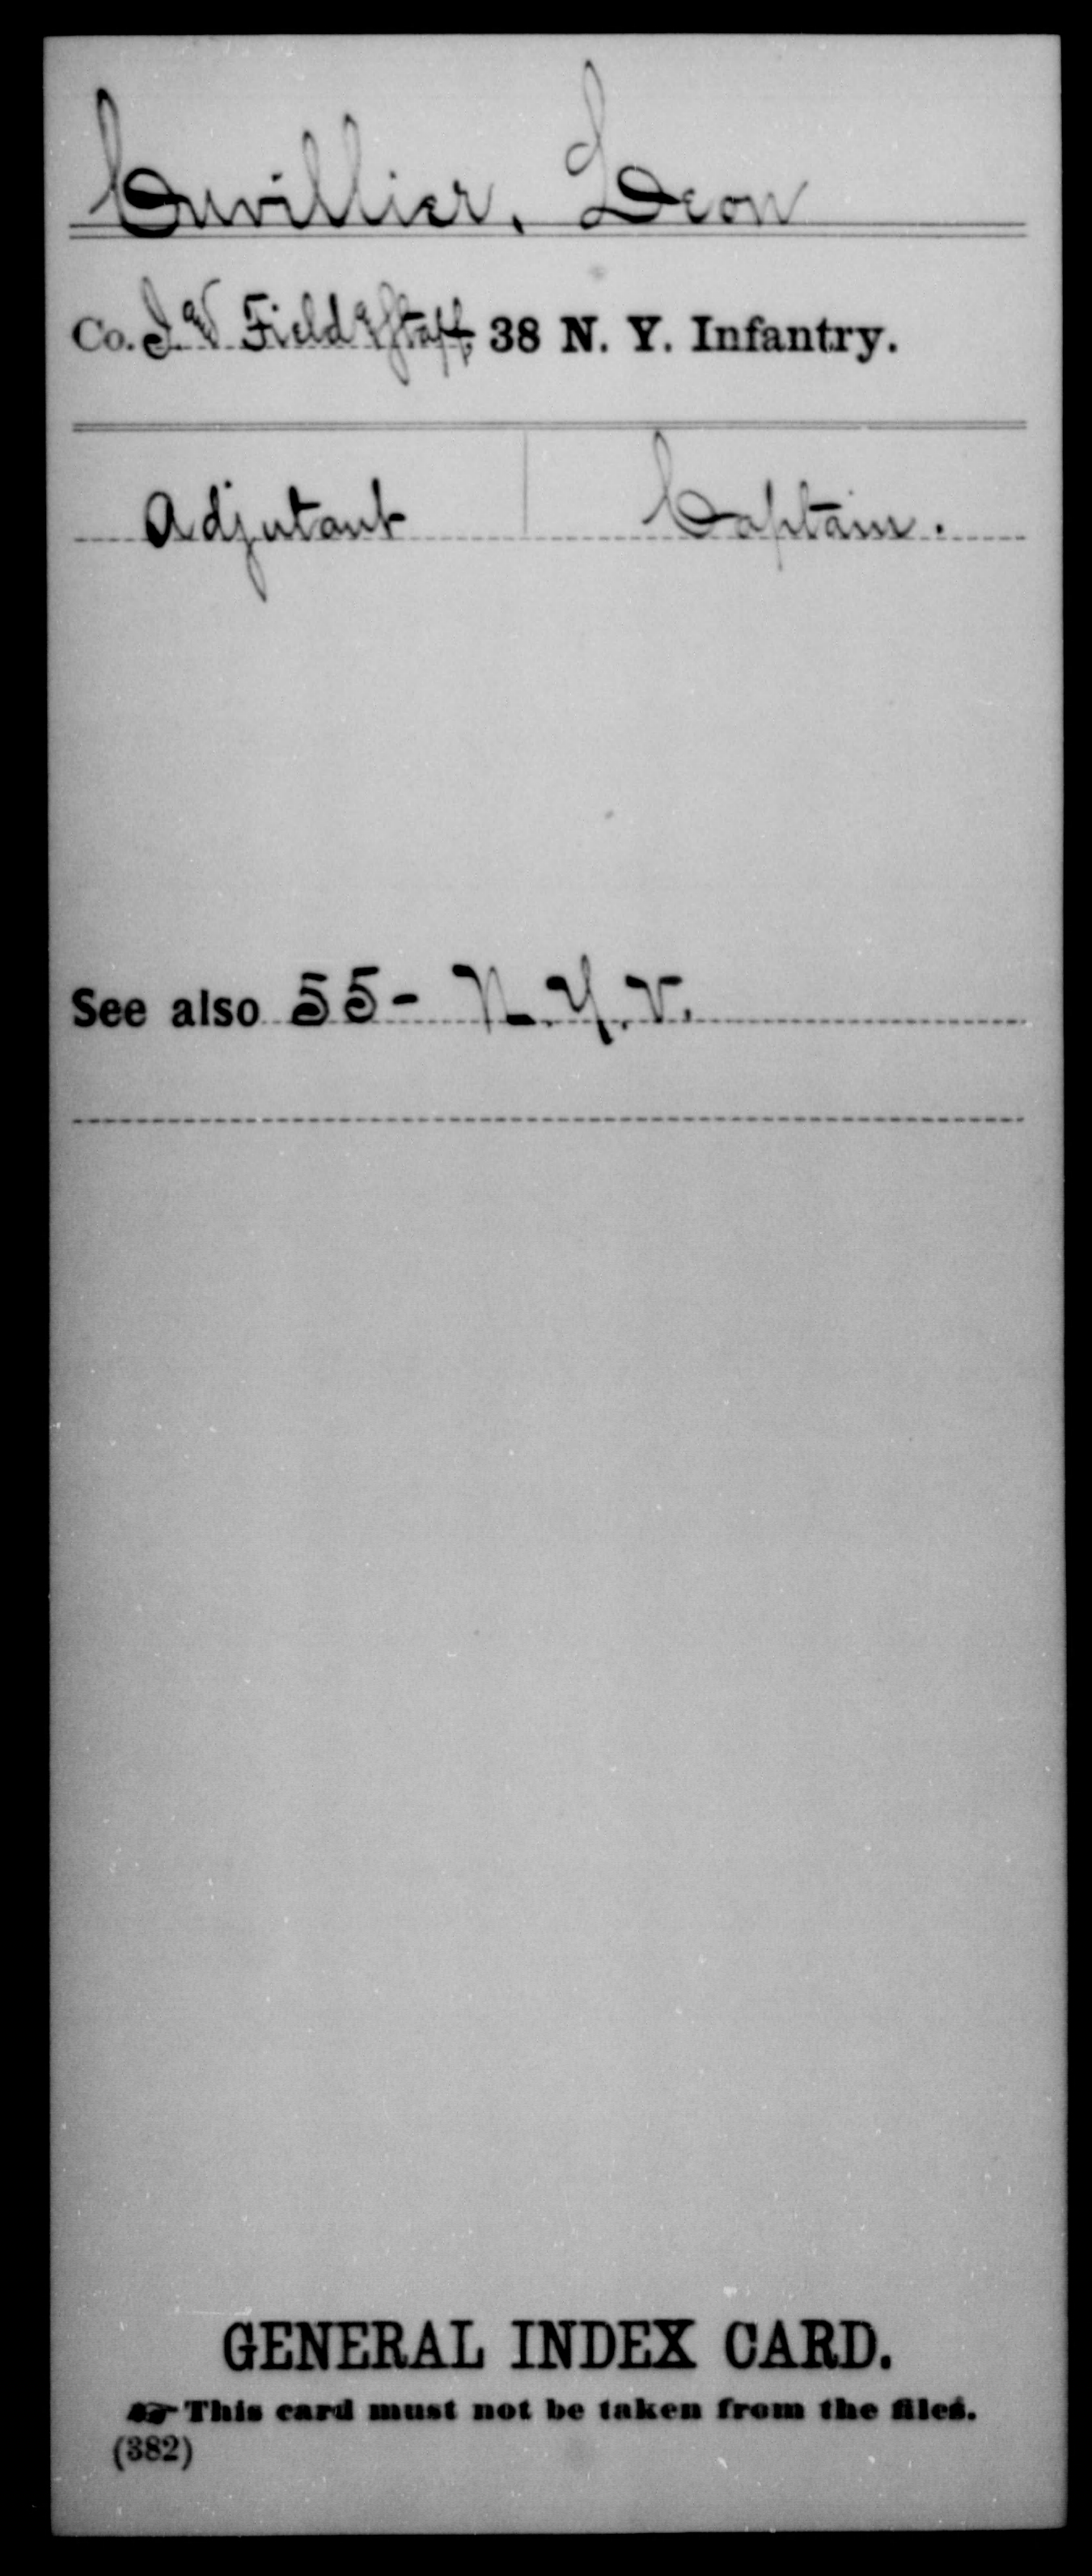 [New York] Cuvillier, Leon - Unit: 38th Infantry, Company: I And Field Staff - Enlistment Rank: Adjutant, Discharge Rank: Captain